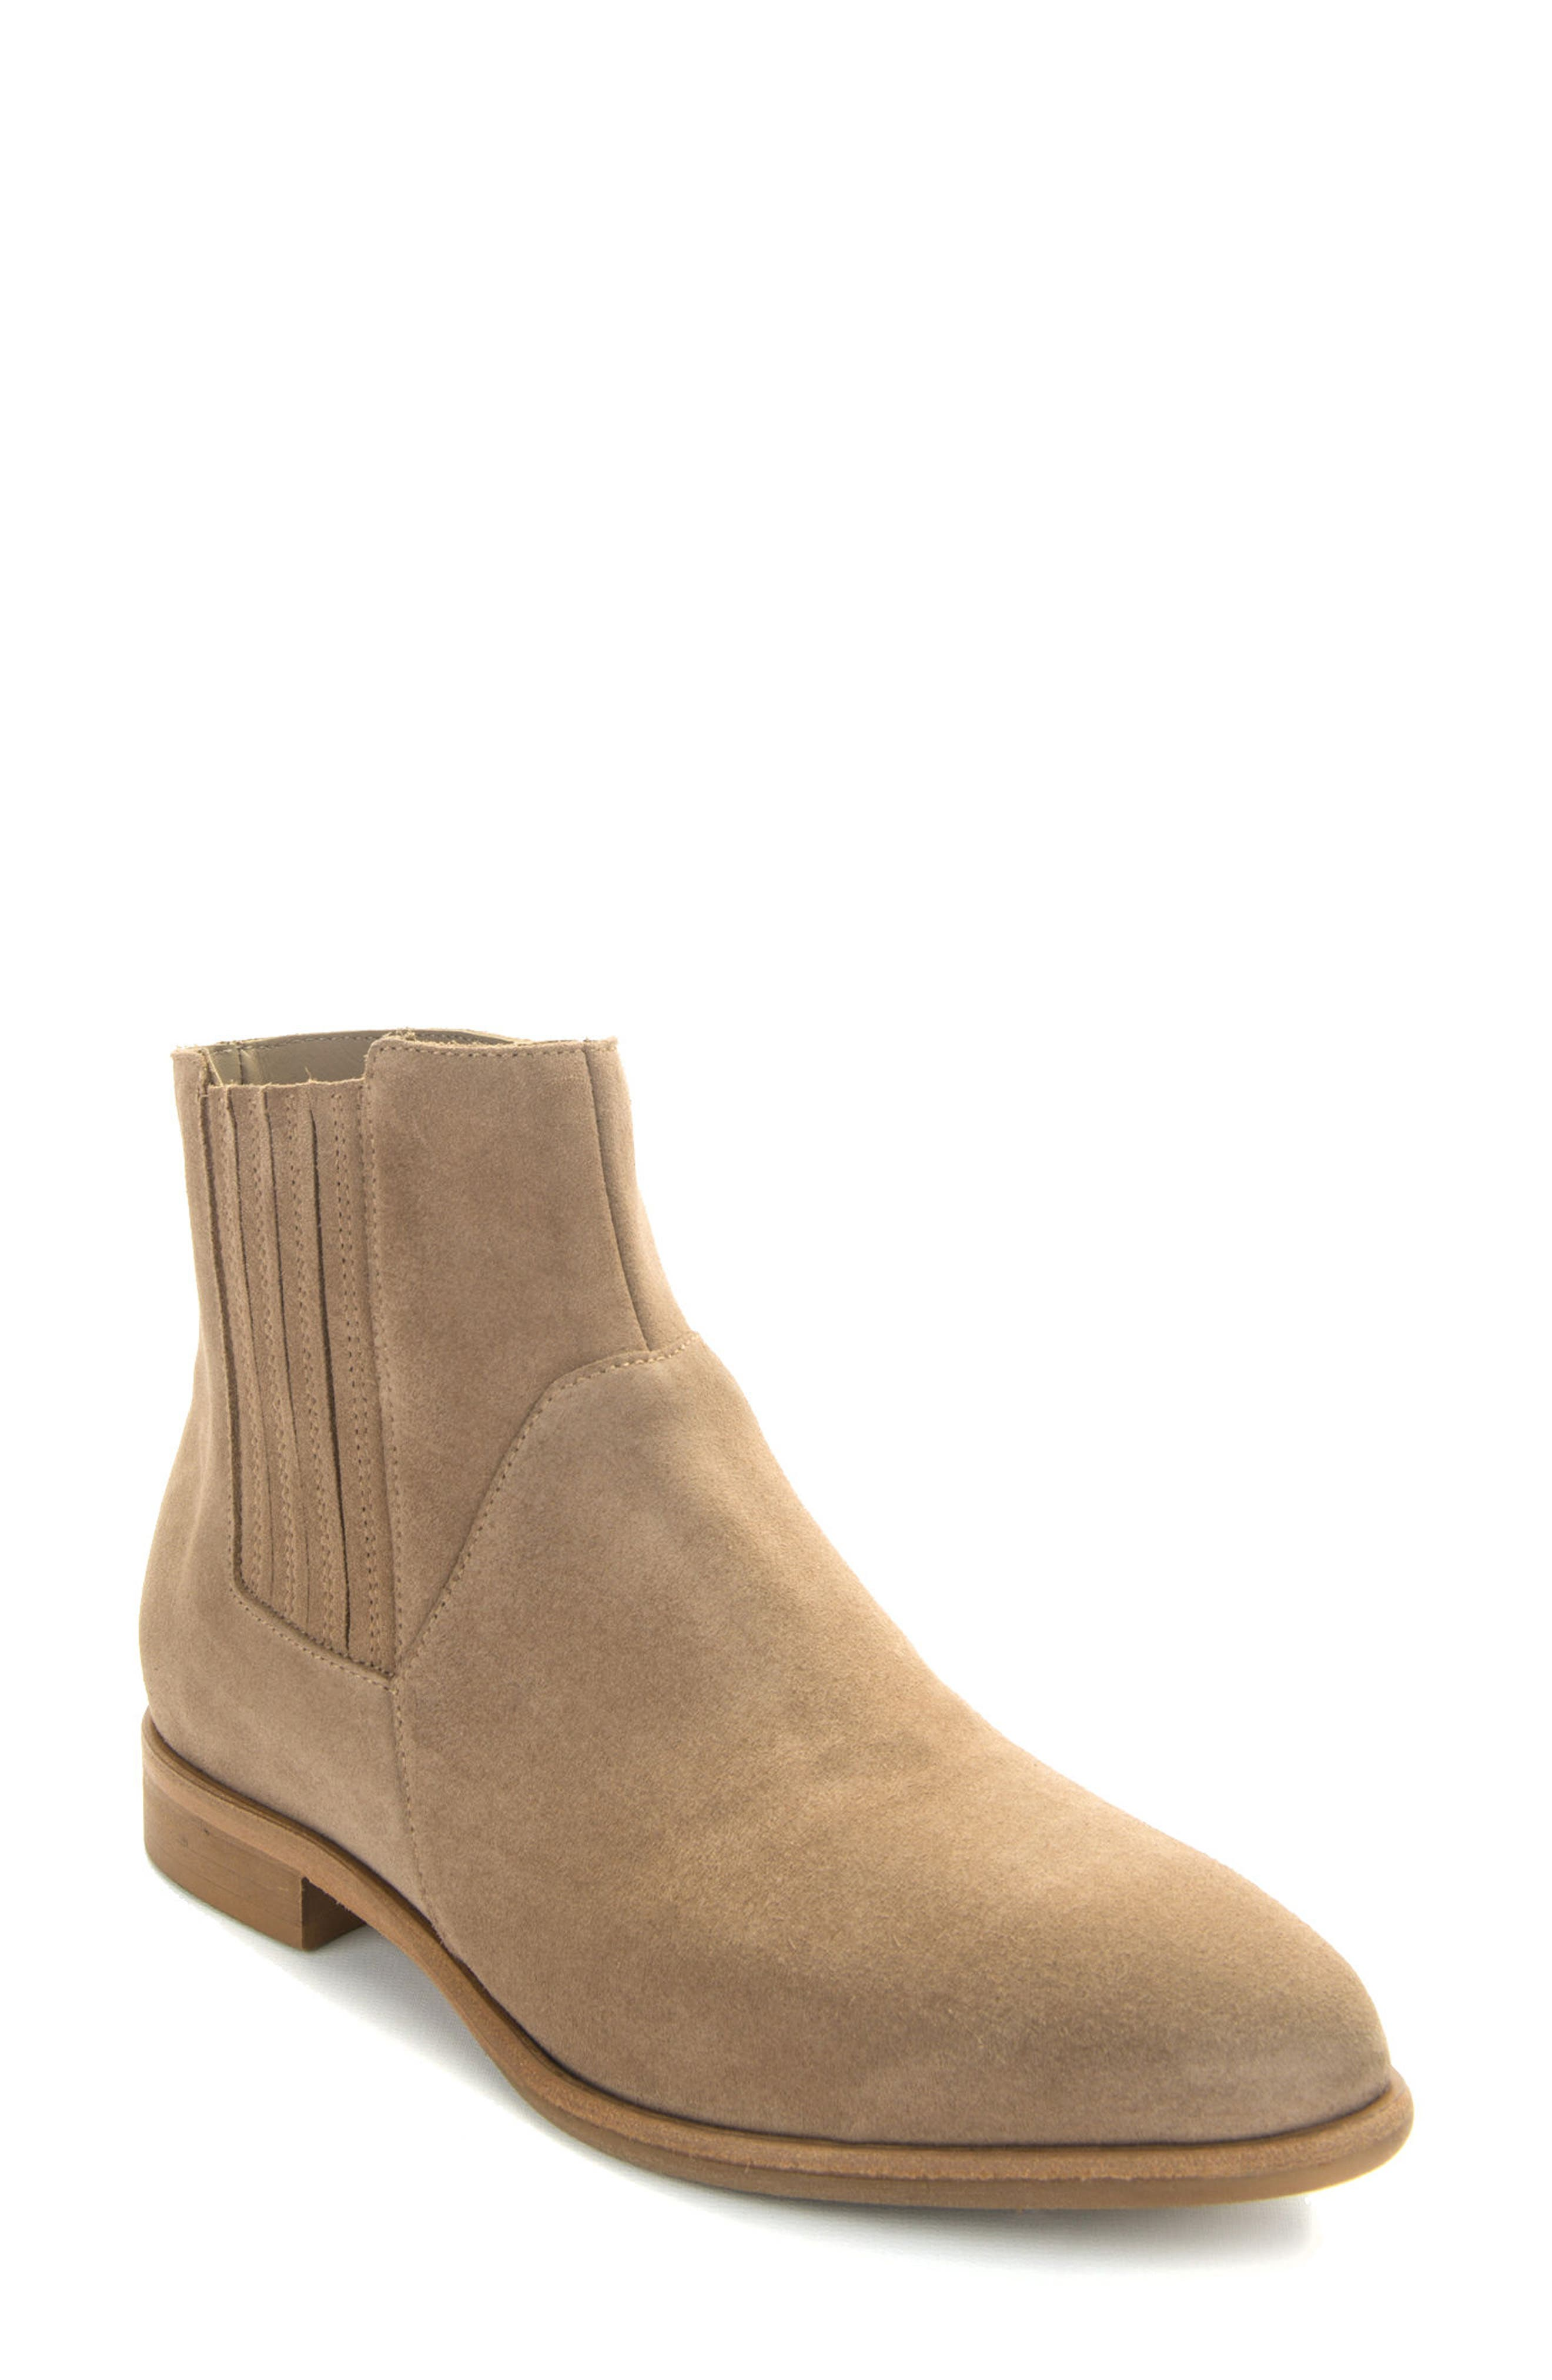 Alternate Image 1 Selected - Italeau Lunella Water-Resistant Chelsea Bootie (Women) (Nordstrom Exclusive)